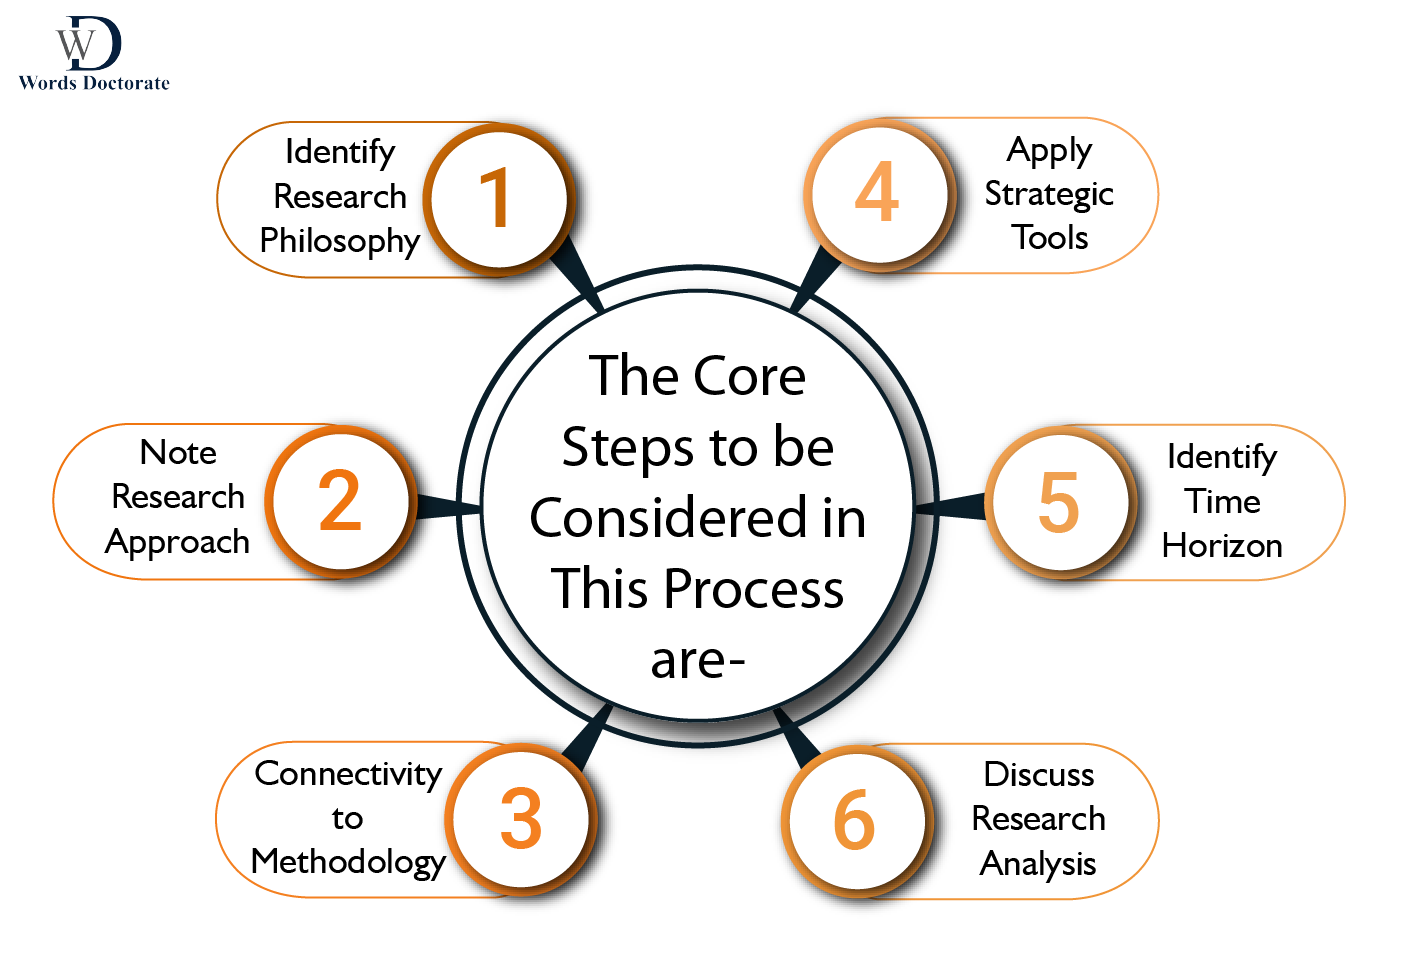 The Core Steps to be considered in this process - words doctorate